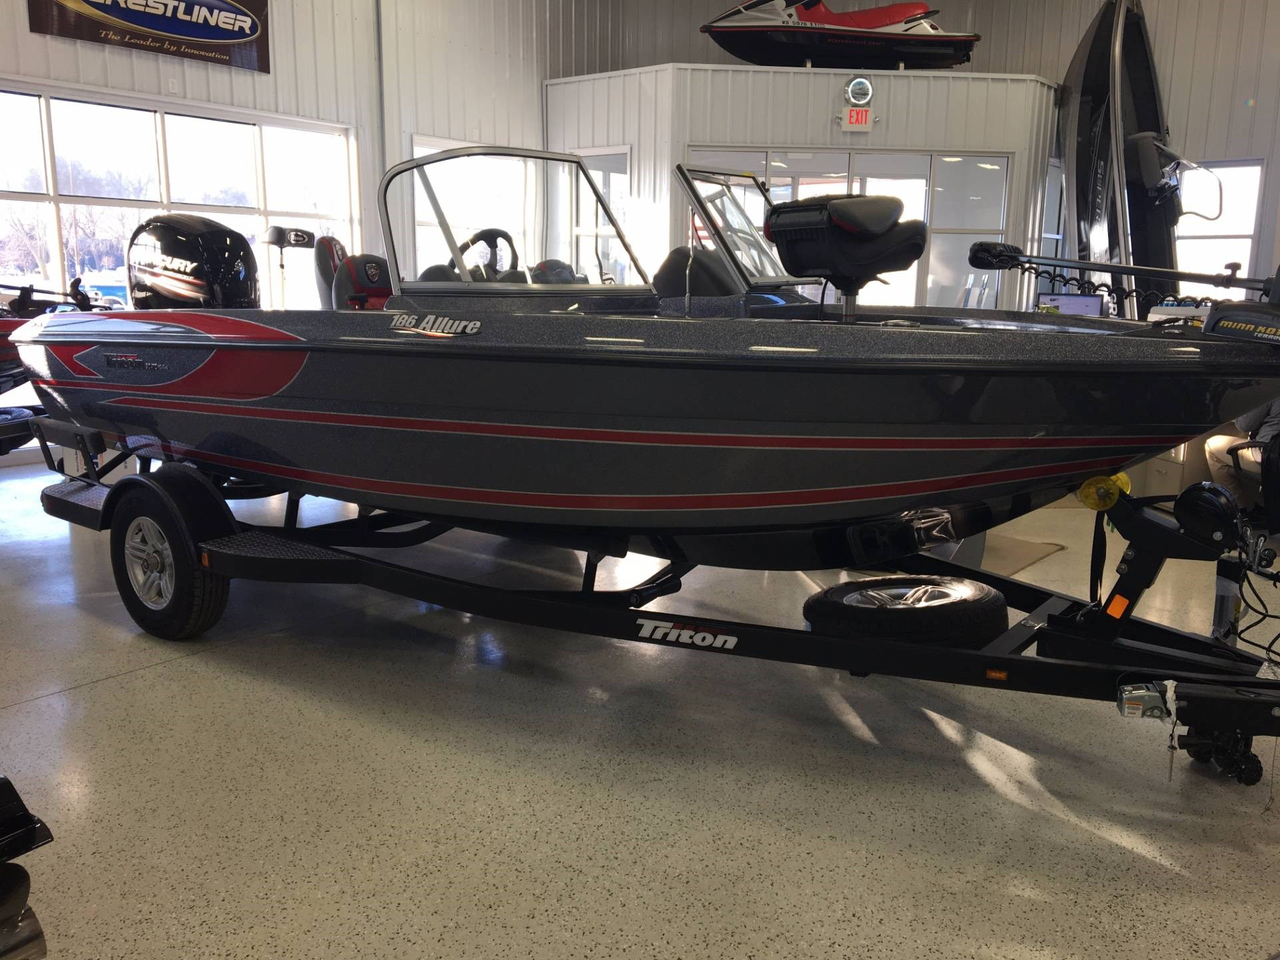 2017 new triton 186 allure ski and fish boat for sale for Best fish and ski boats 2017